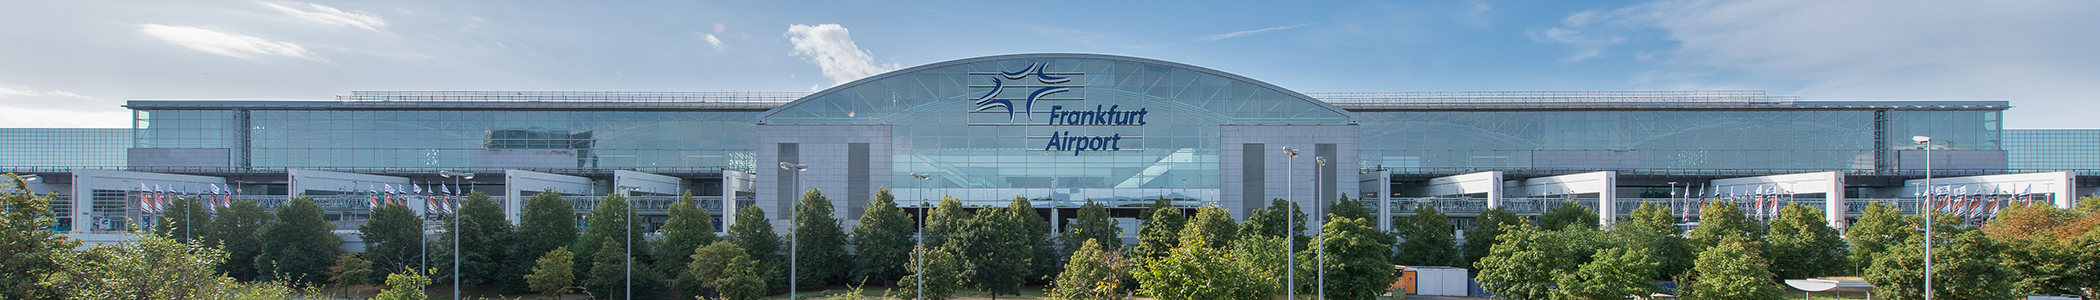 Frankfurt Airport Travel Guide At Wikivoyage